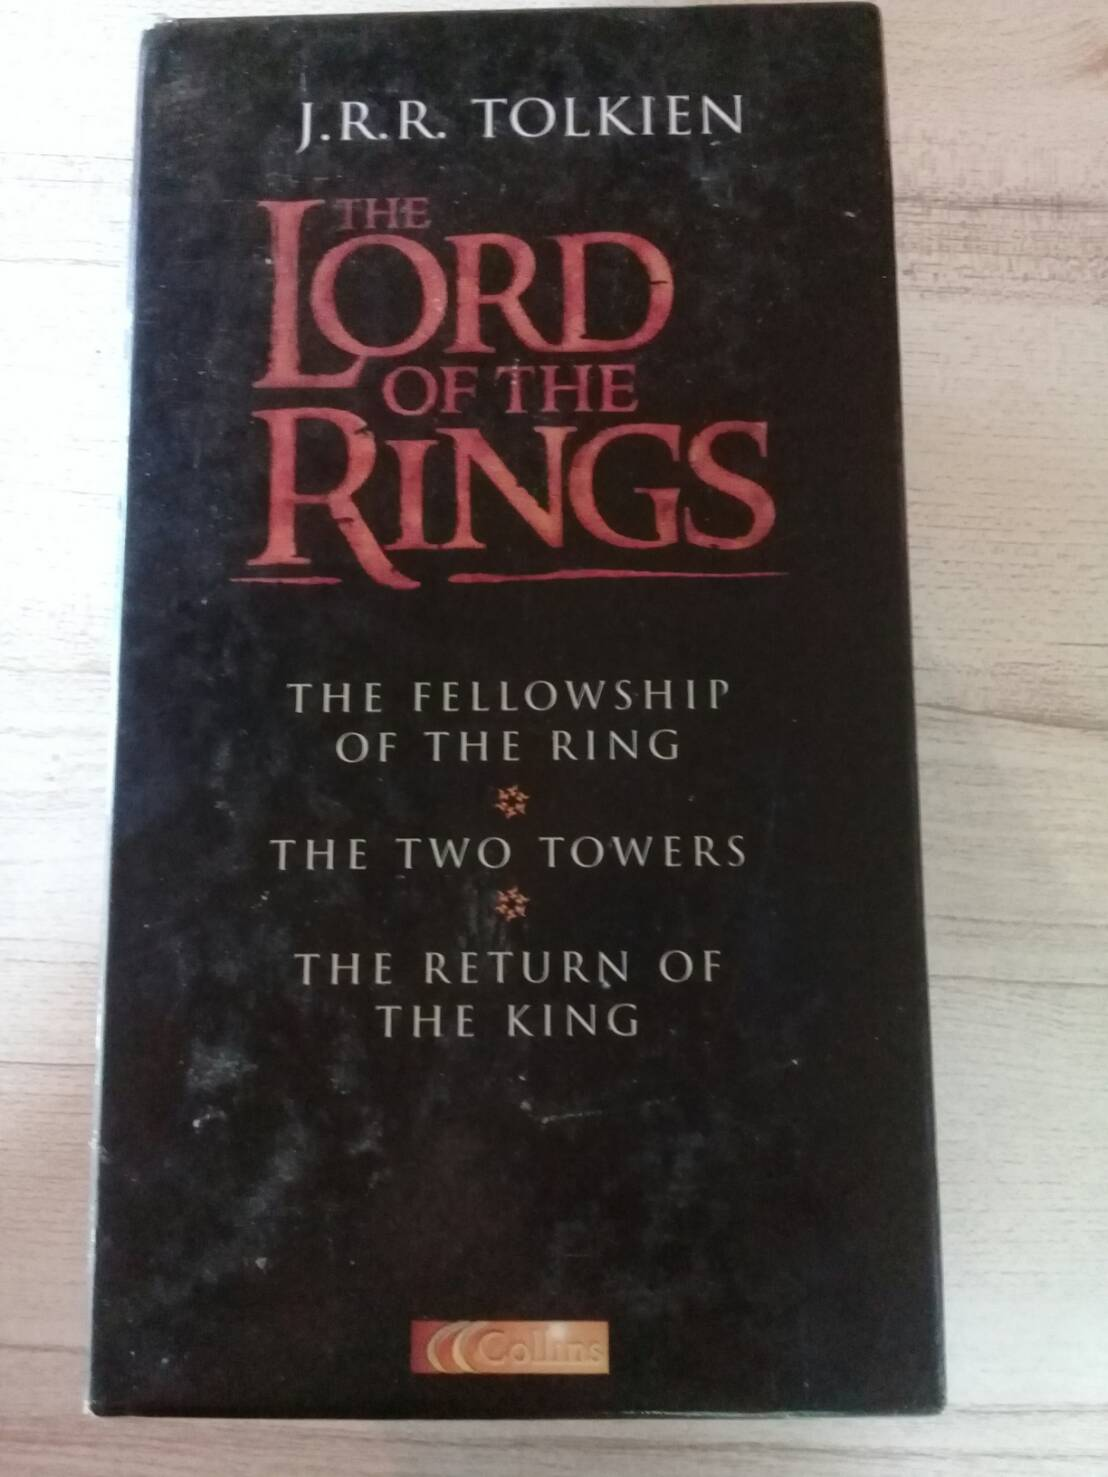 The Lord of the Rings Box Set (7 books)